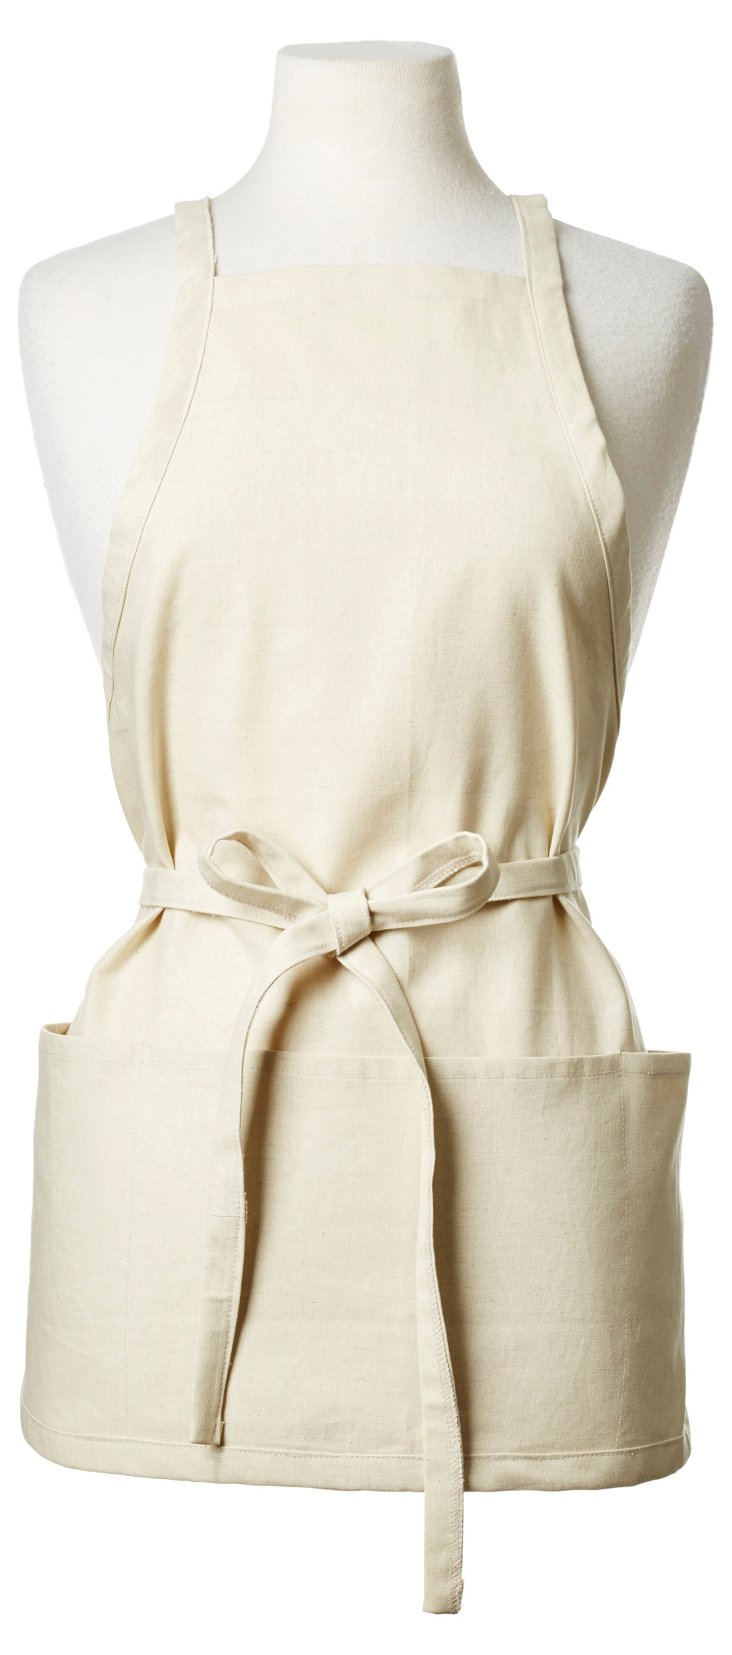 Essex Natural Short Apron, Beige